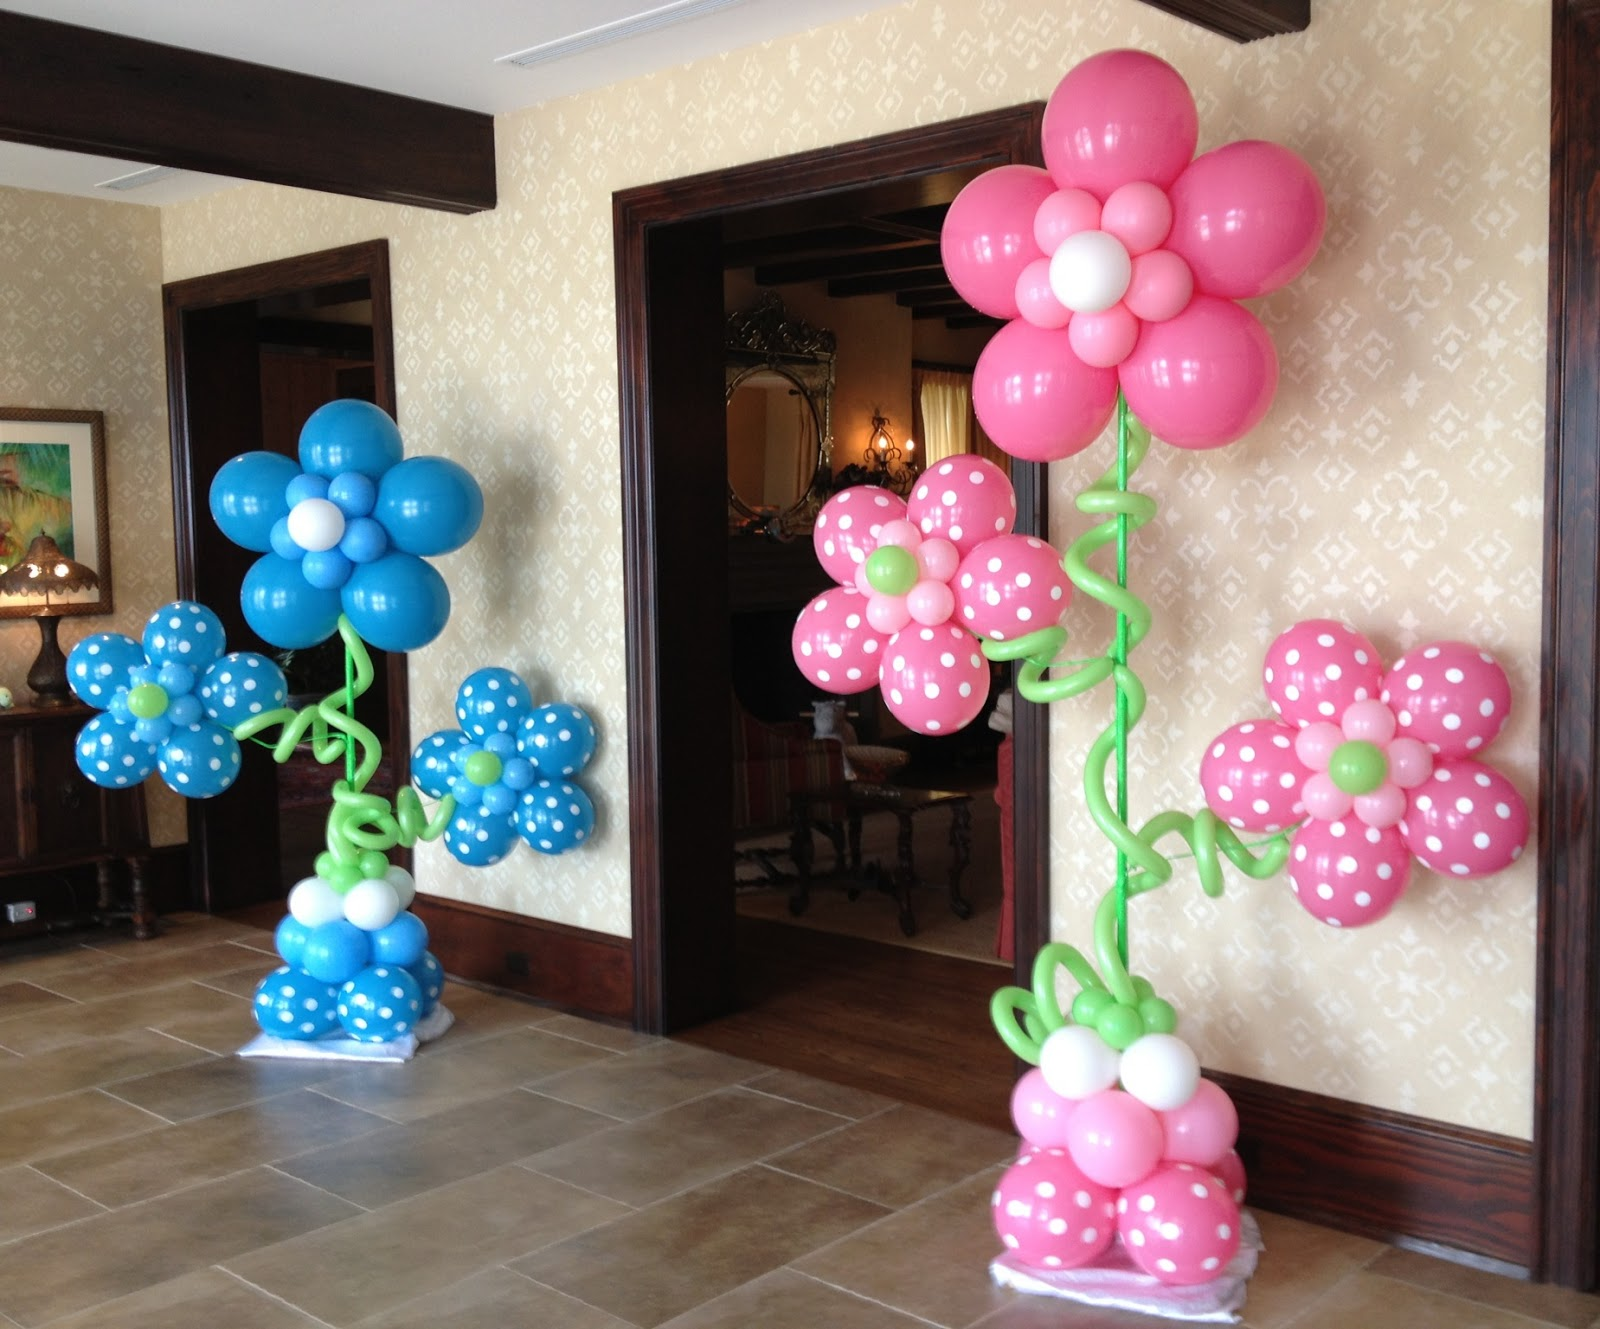 Party people event decorating company june 2013 for Balloon decoration company